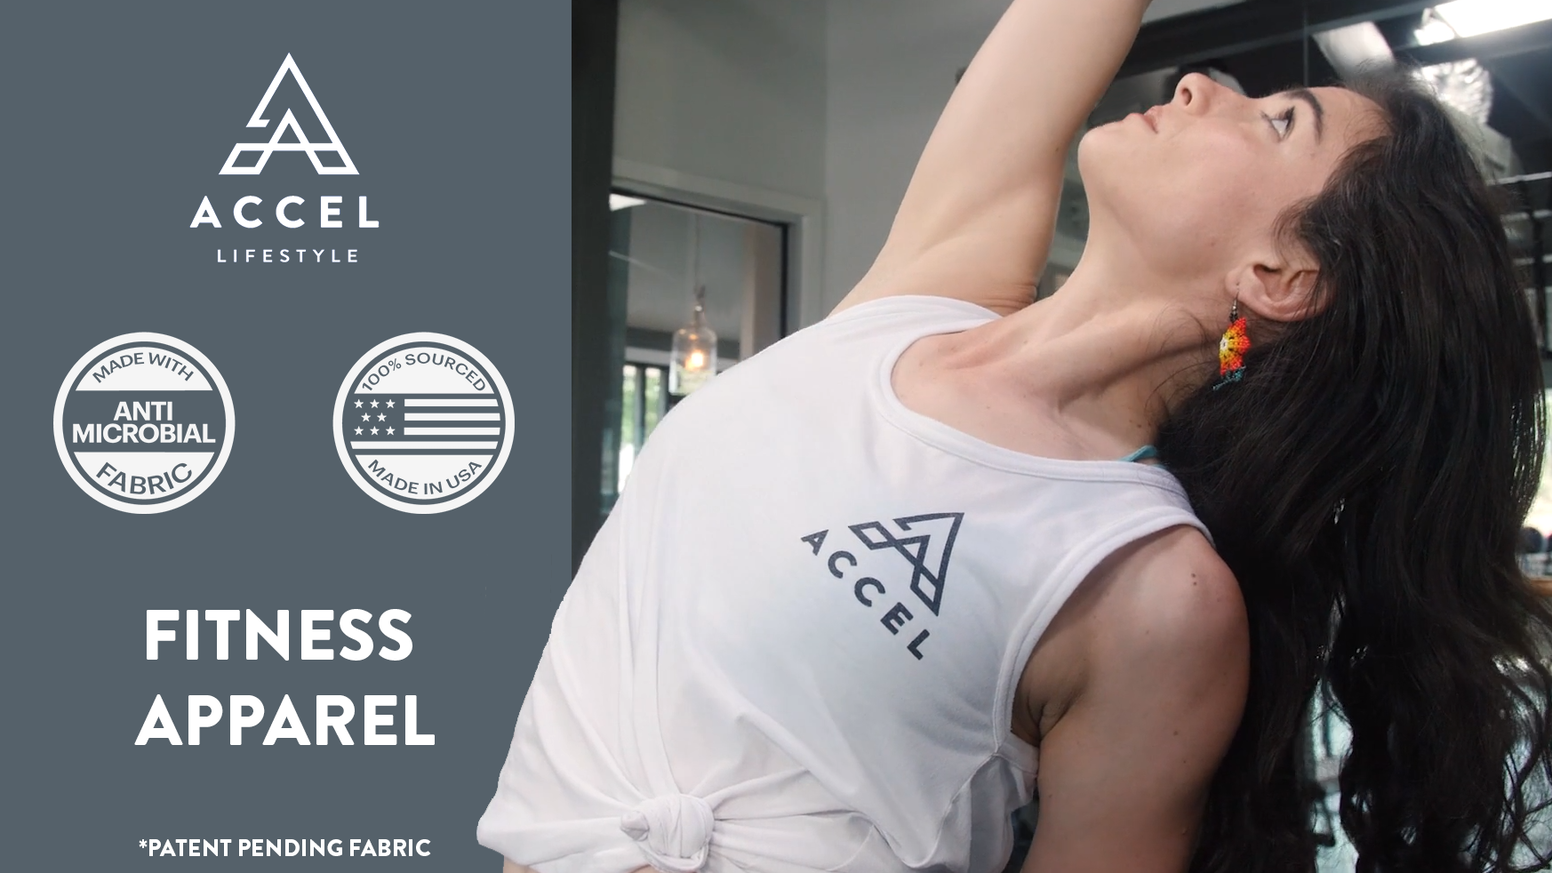 Started by a creative chemist, Accel Lifestyle is the first ethical activewear brand for people who sweat...and want to smell fresh.